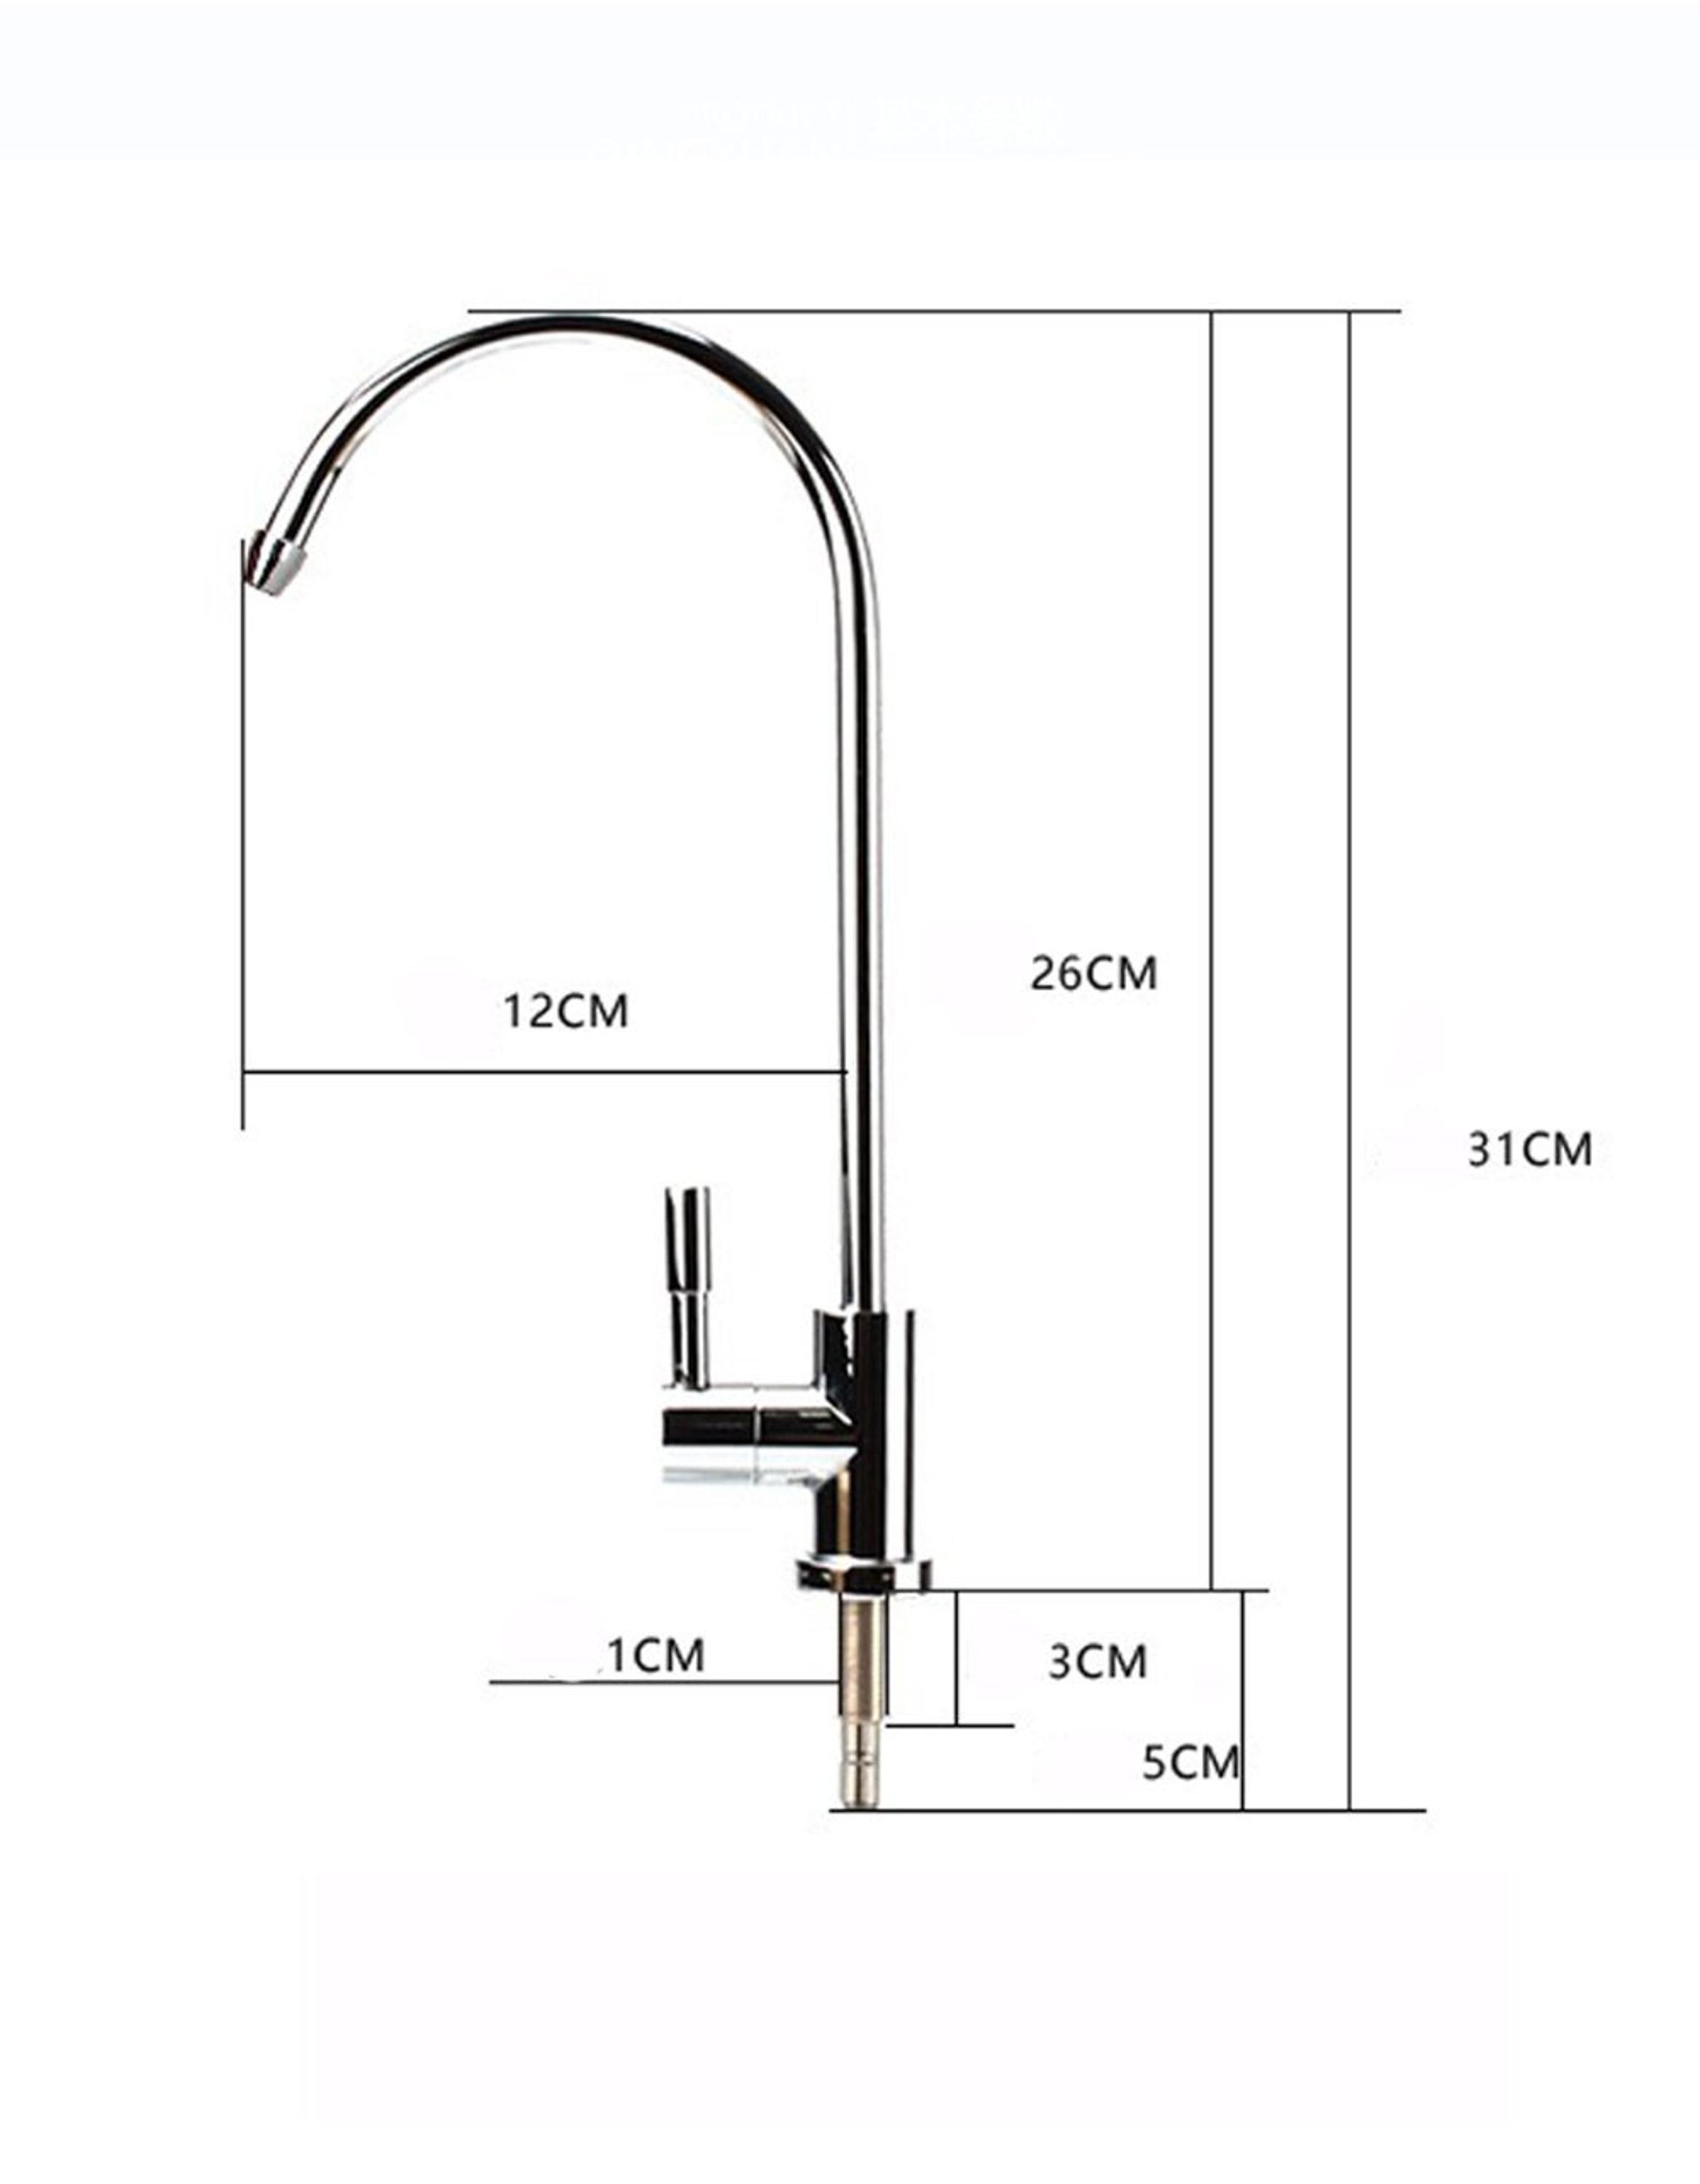 beverage faucets free m brass b kit equipment lead mounting steel on s stainless assembled ts price the get x type sinks best faucet supply t